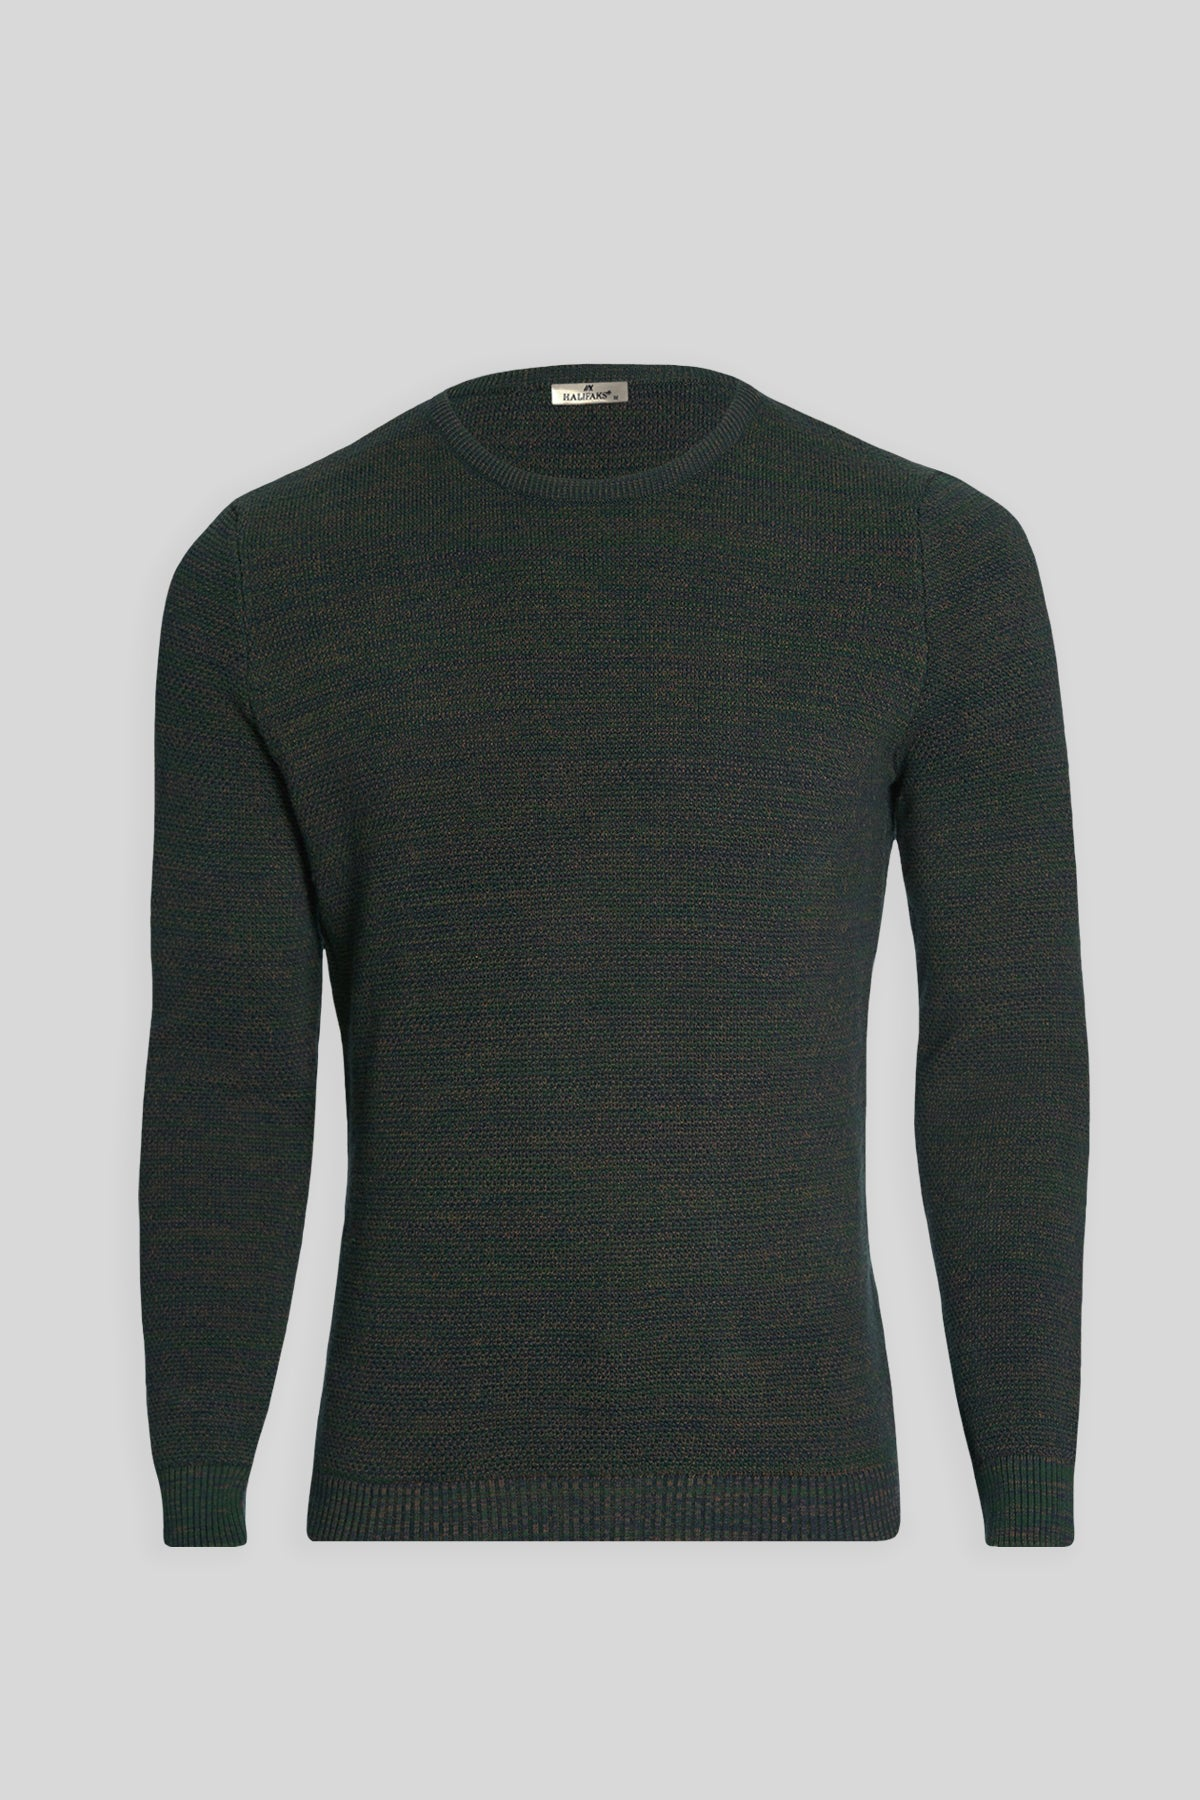 Crew Neck Cotton Green-Navy Blue Sweater